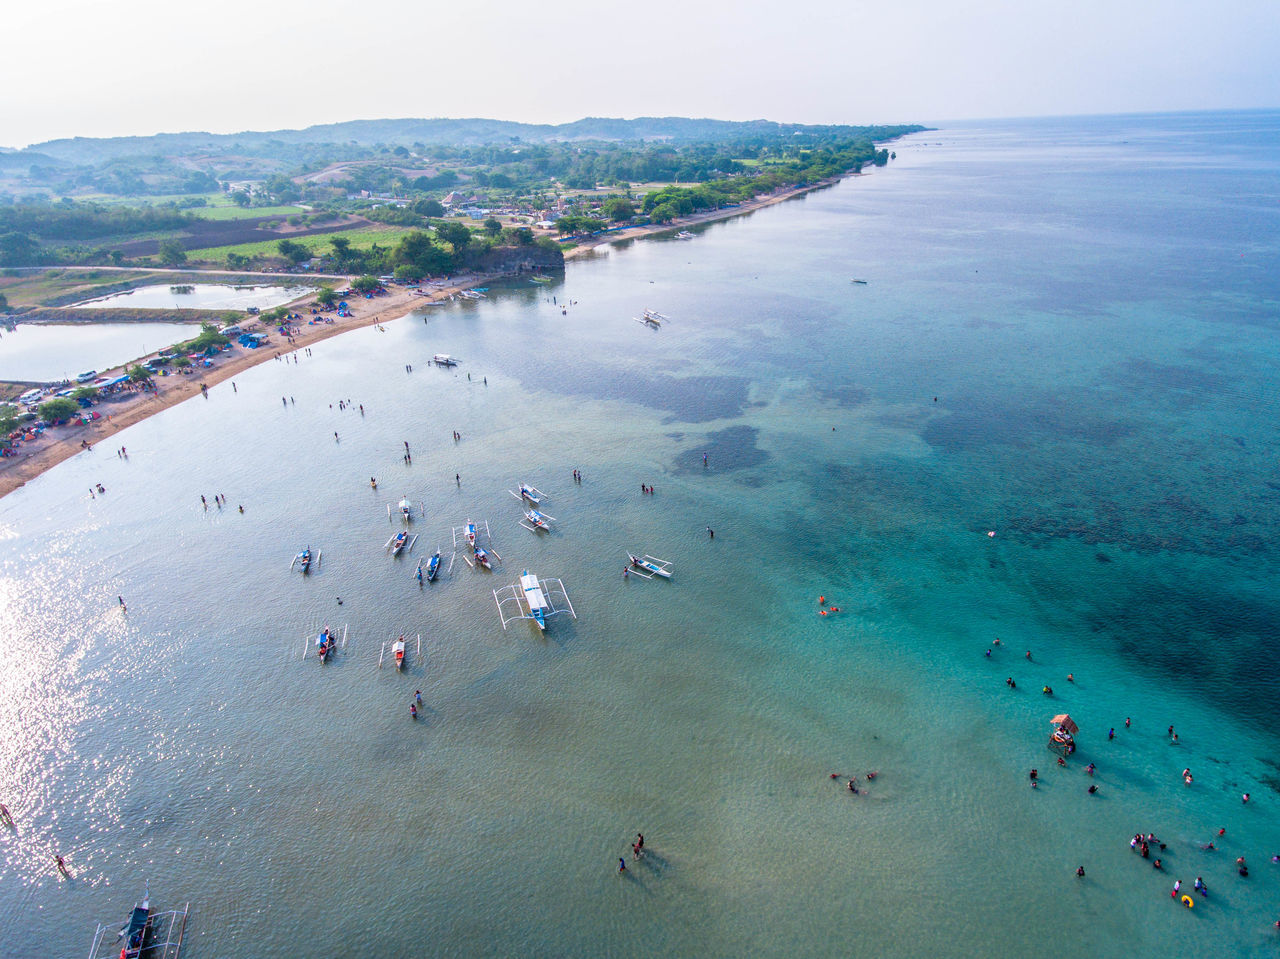 Aerial View Beach Beauty In Nature Day EyeemPhilippines High Angle View Horizon Over Water Large Group Of People Men Mountain Nature Nautical Vessel Outdoors People Real People Sand Scenics Sea Sky Travel Destinations Vacations Water